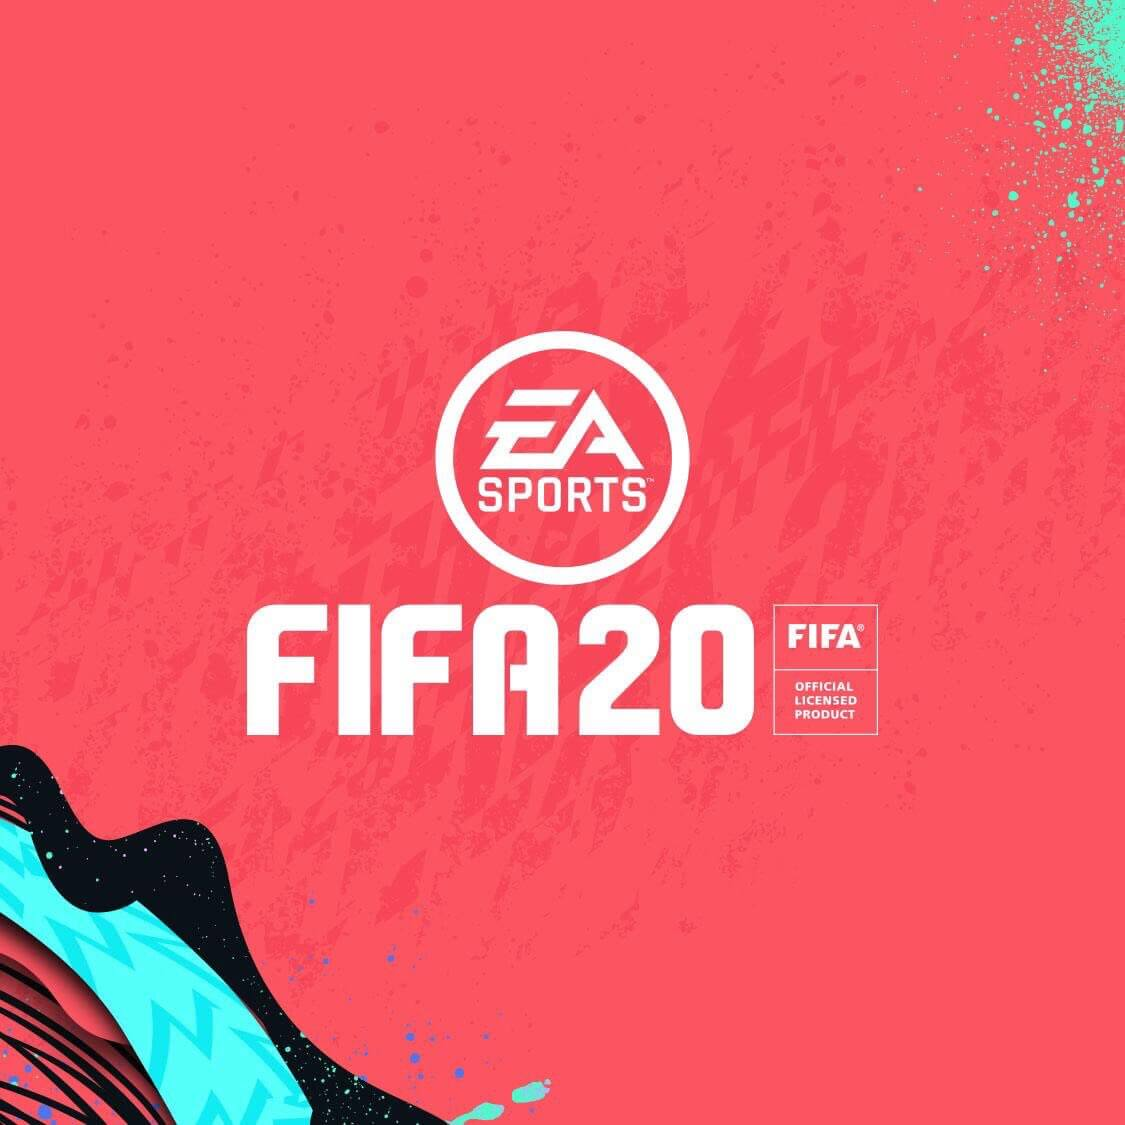 EA Sports FIFA 20 design logo